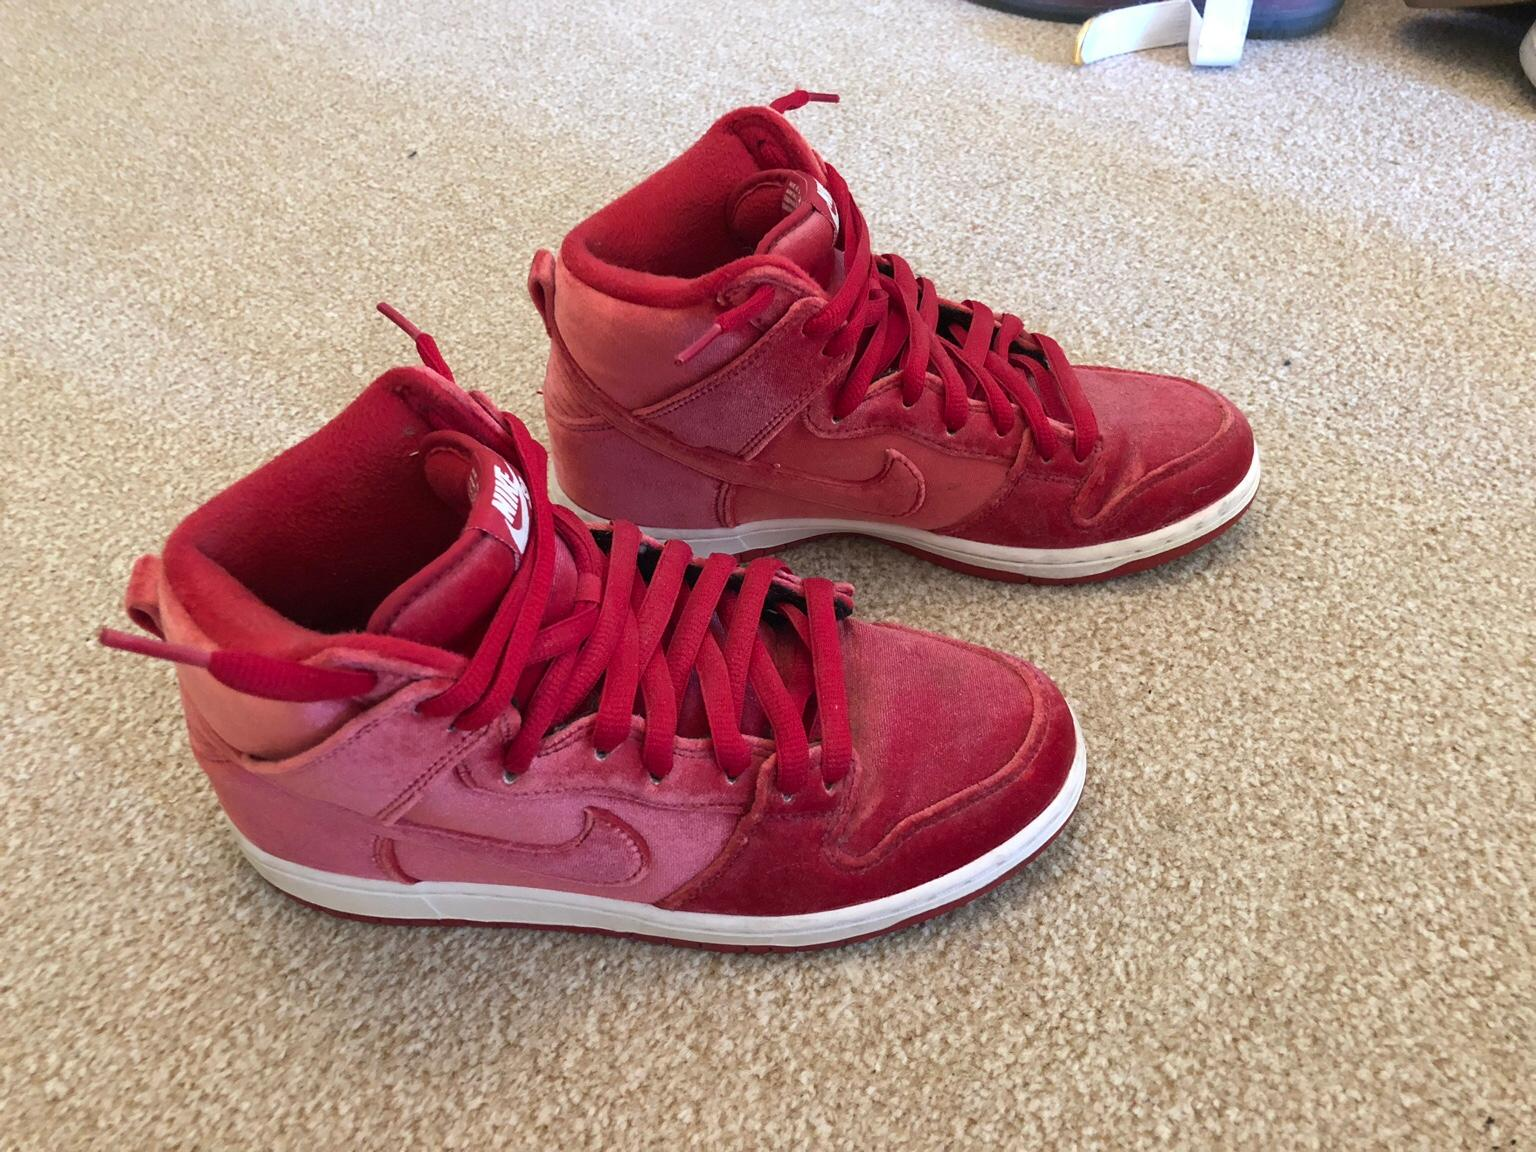 quality design 36733 6d4c9 Nike SB high dunk red velvet trainers size 6